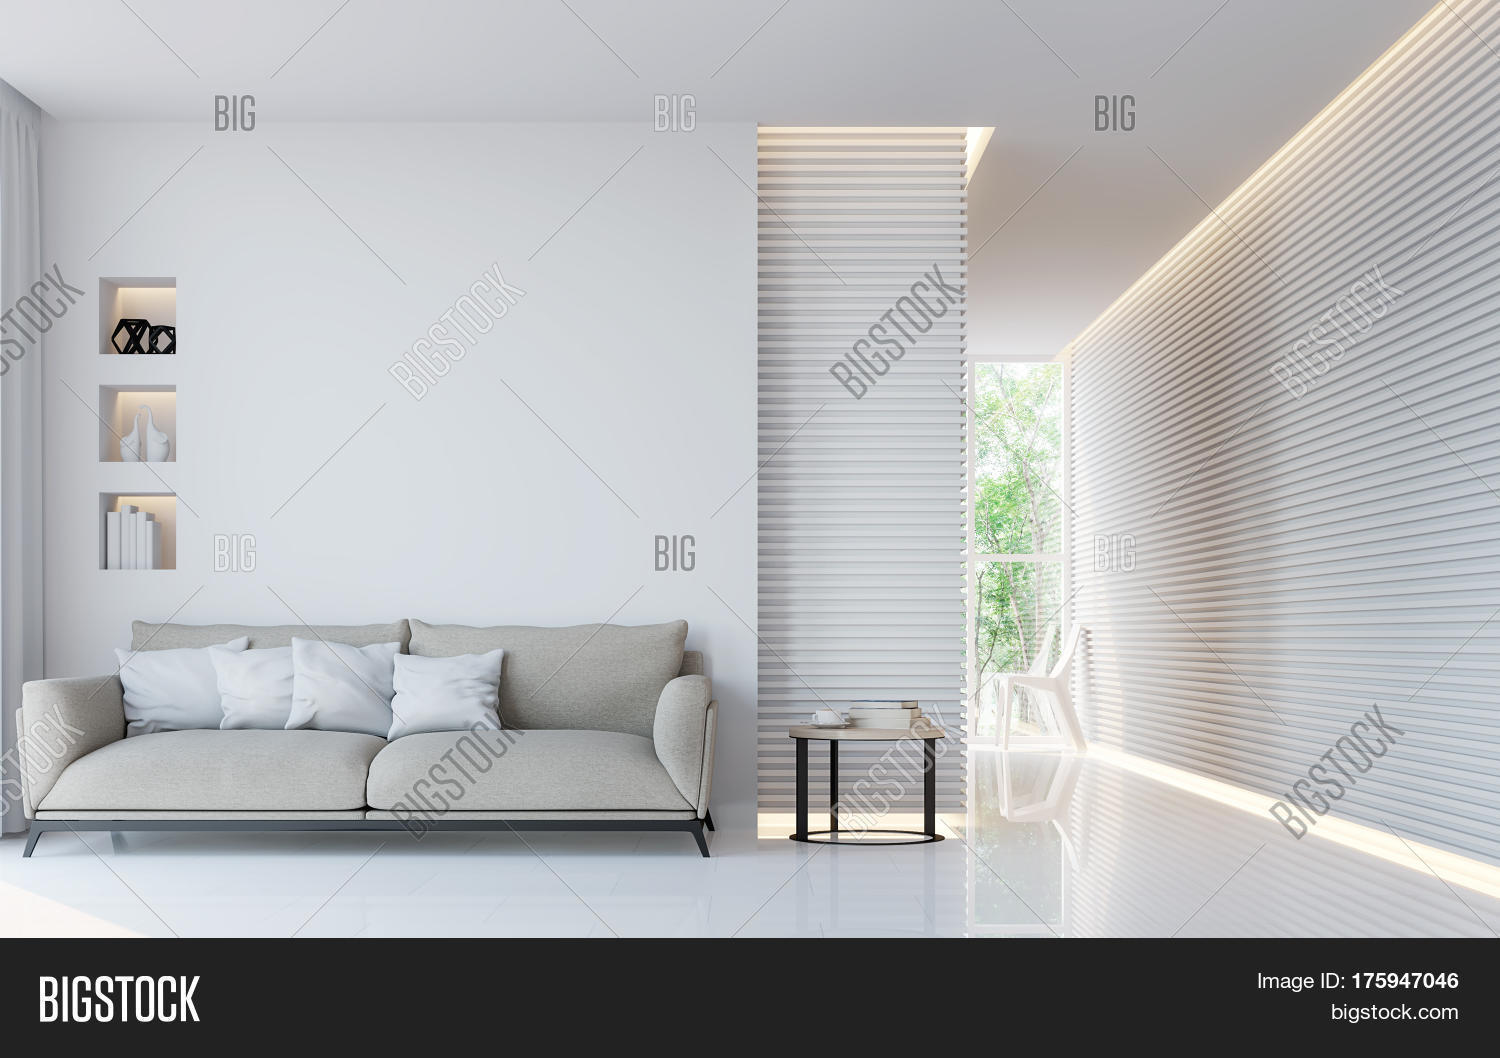 hd tjihome images room living and grey white